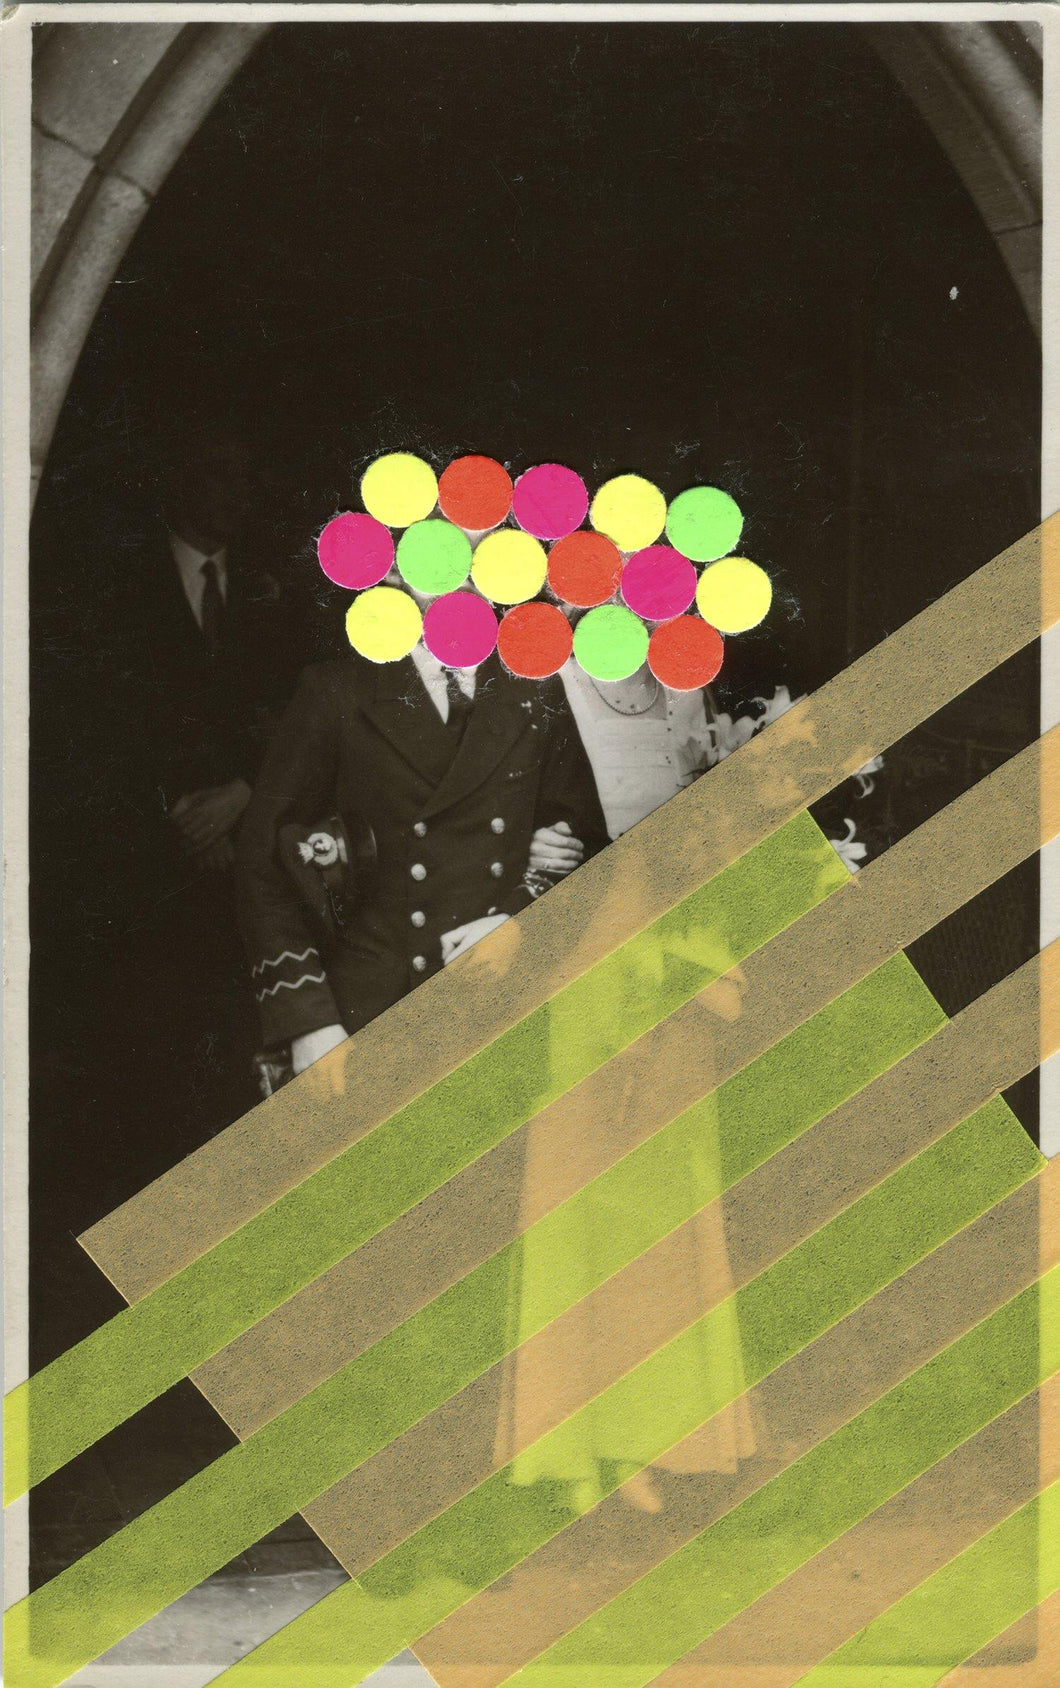 Classic Vintage Wedding Couple Portrait Photo Altered With Neon Shades - Naomi Vona Art